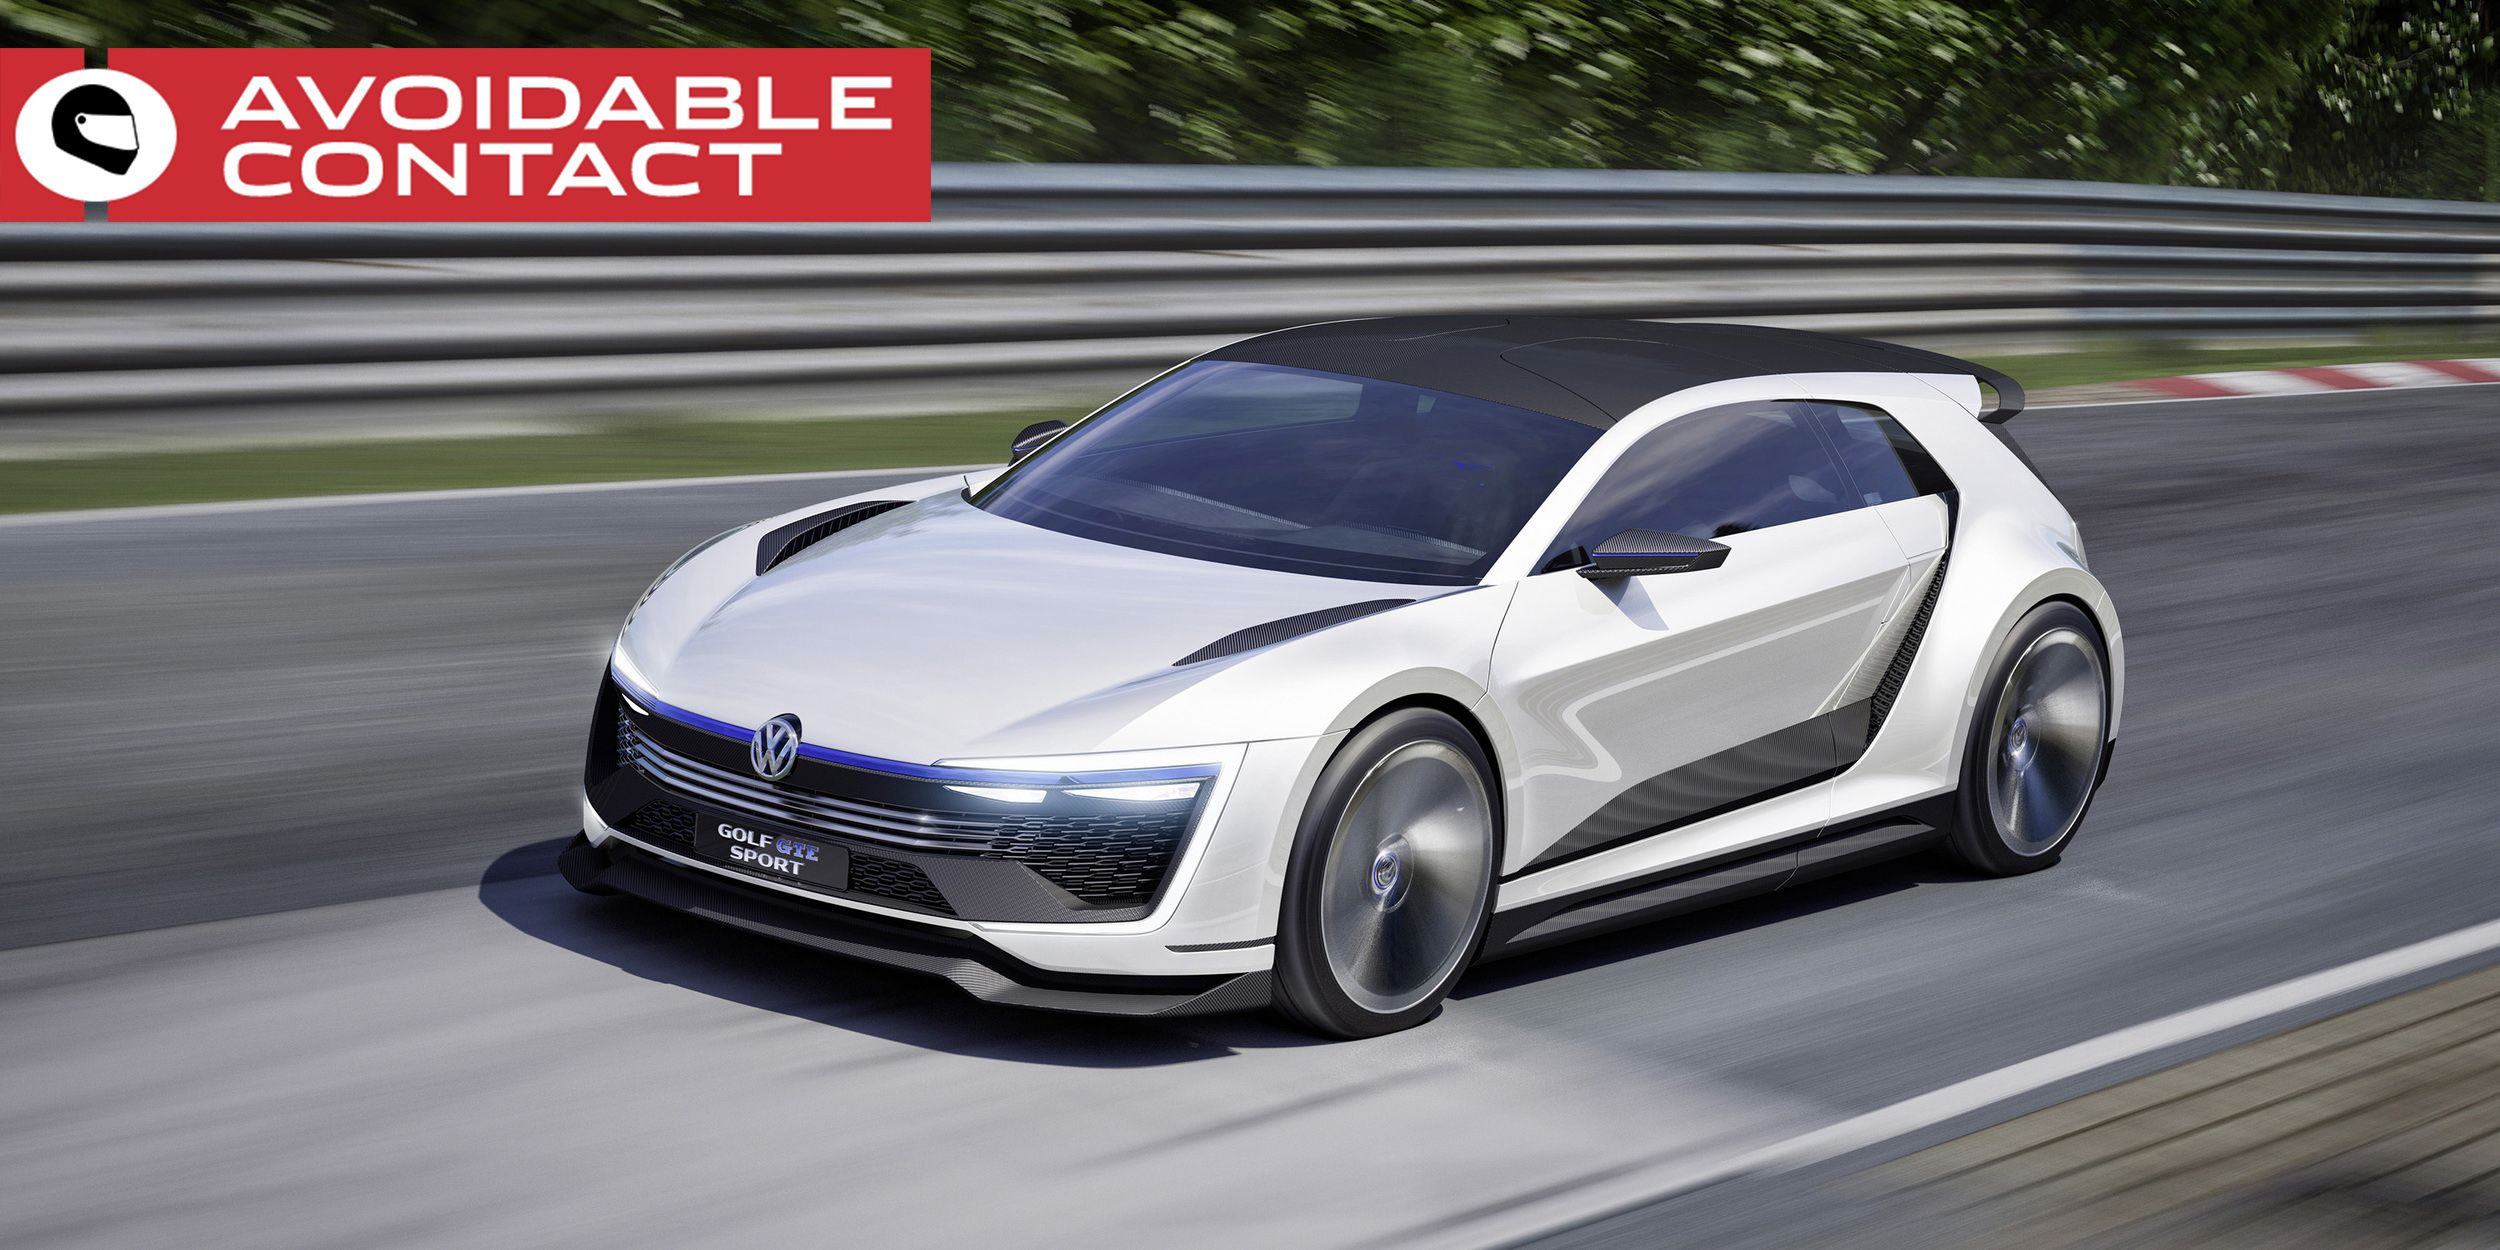 volkswagen needs to build a mid-engine hybrid sports car right now